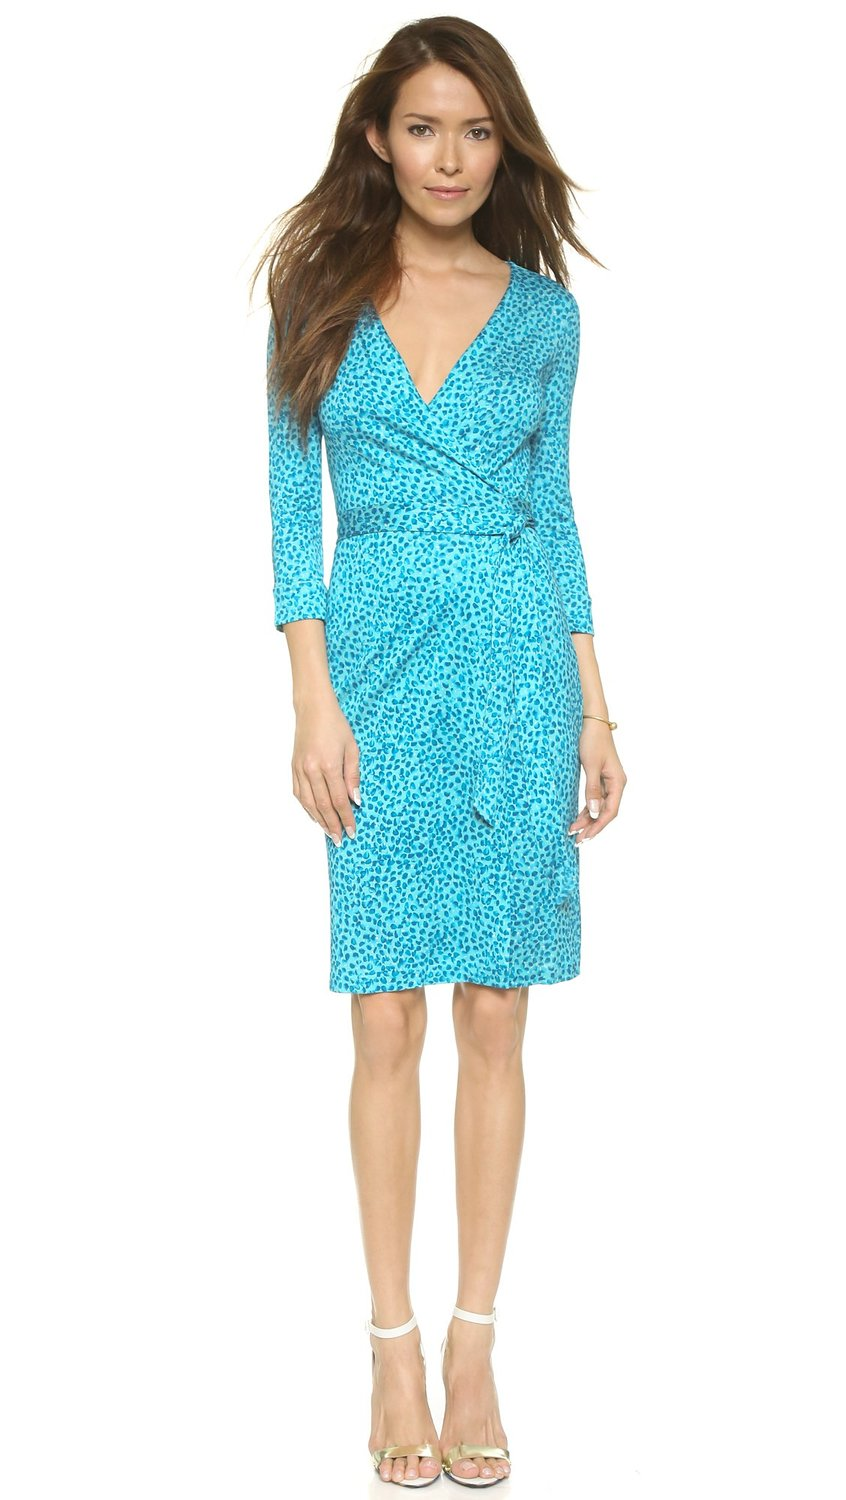 Dvf Wrap Dress Amazon Two Wrap Dress at Amazon